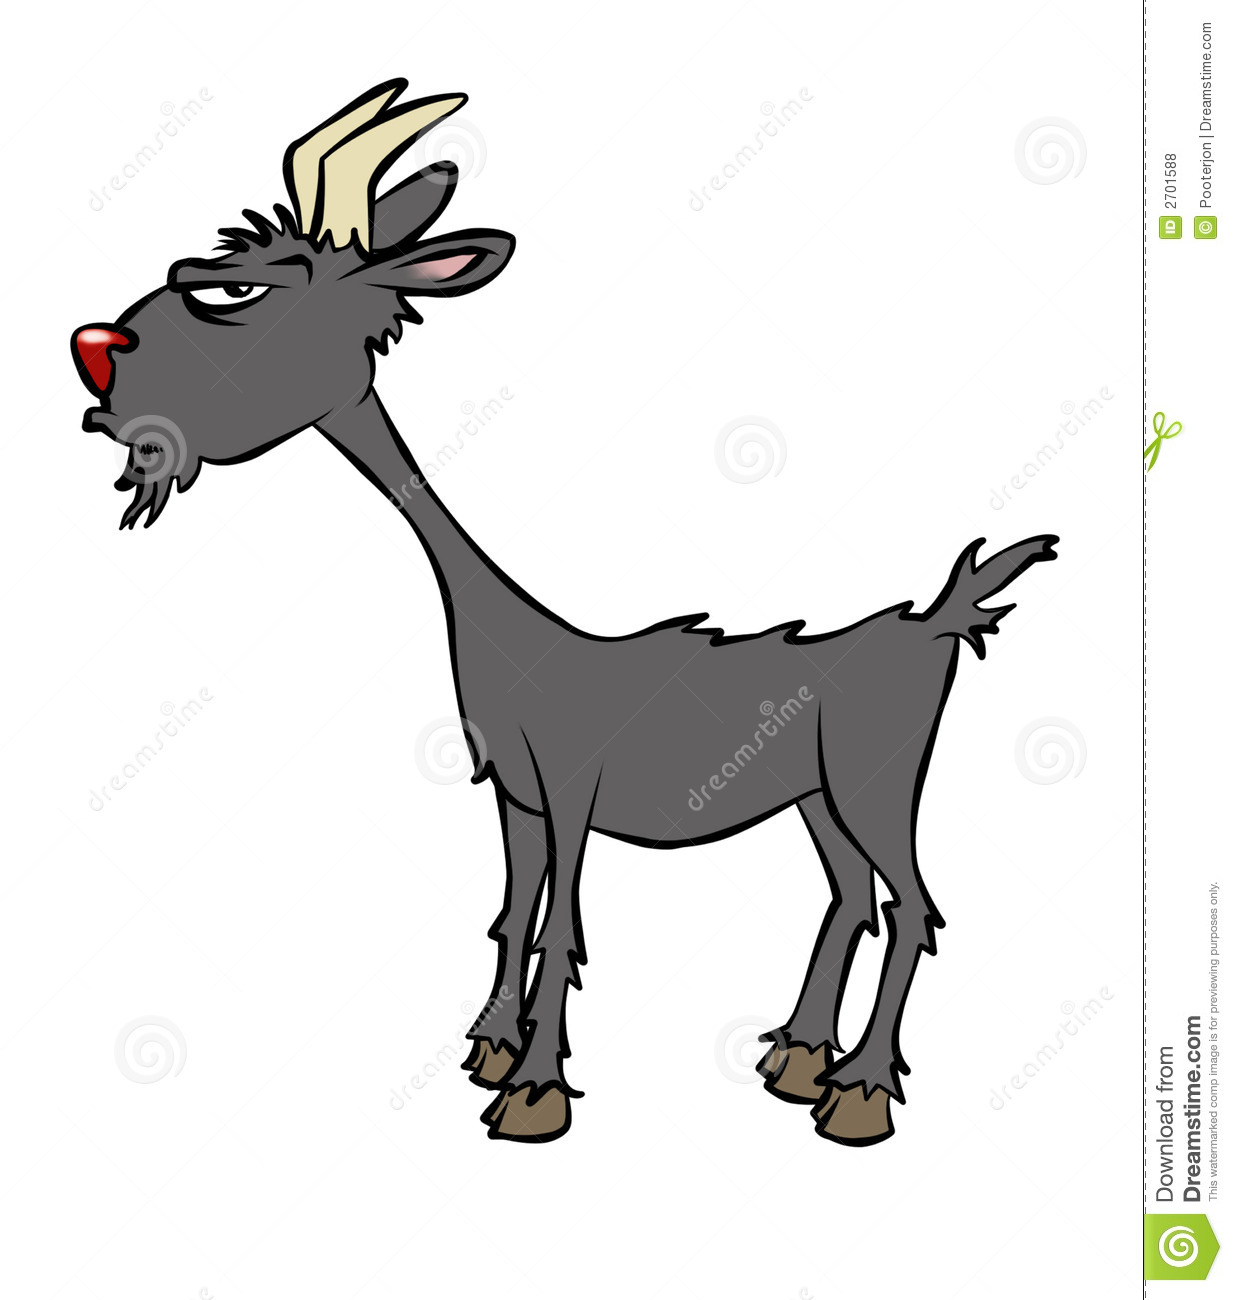 Billy Goat clipart #16, Download drawings